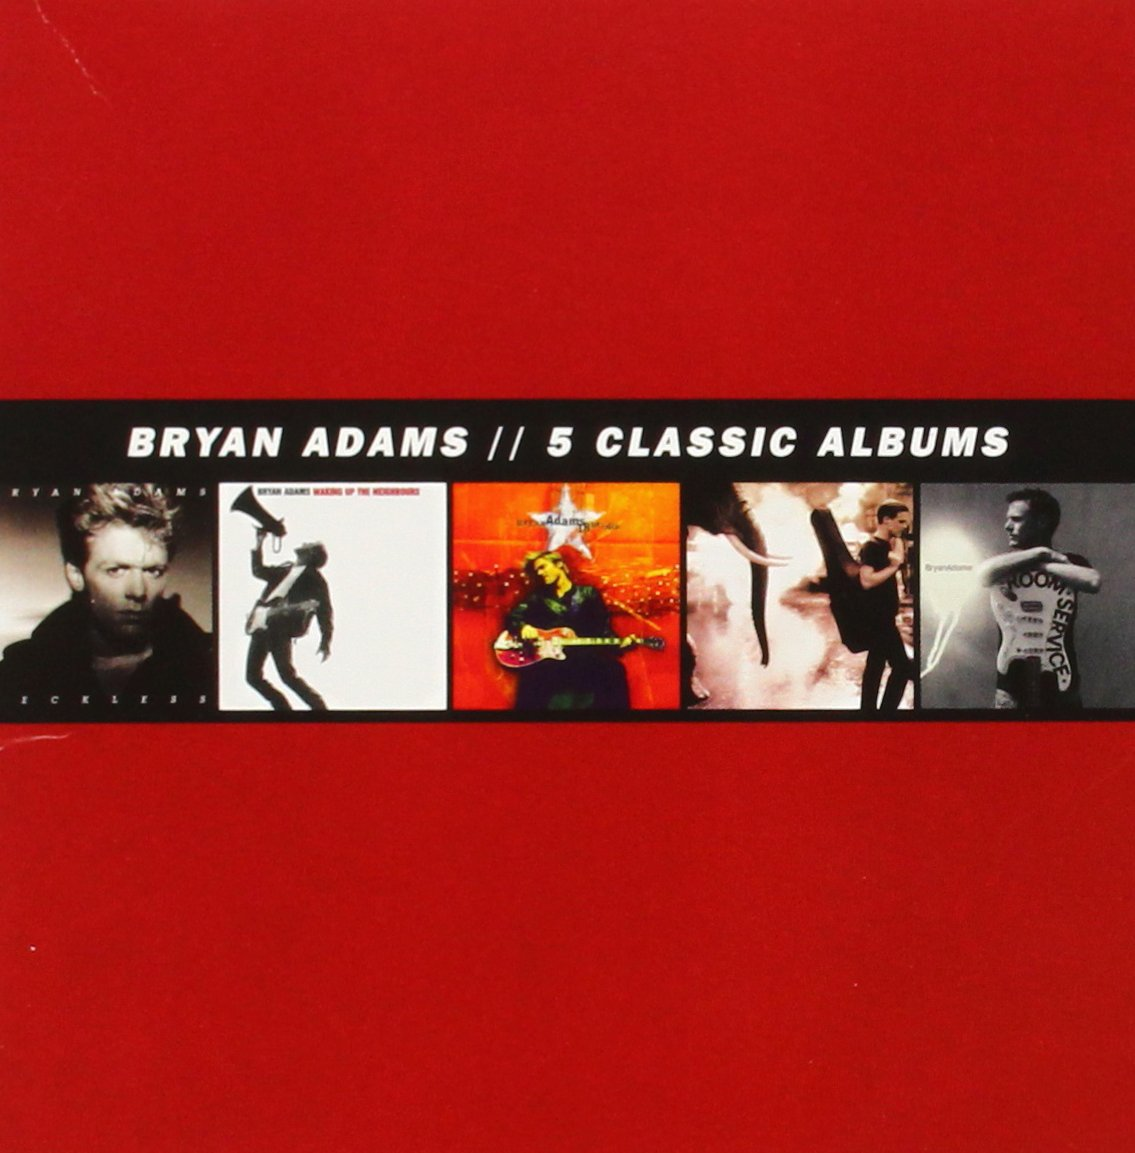 Bryan Adams 5 Classic Albums - Gears For Ears